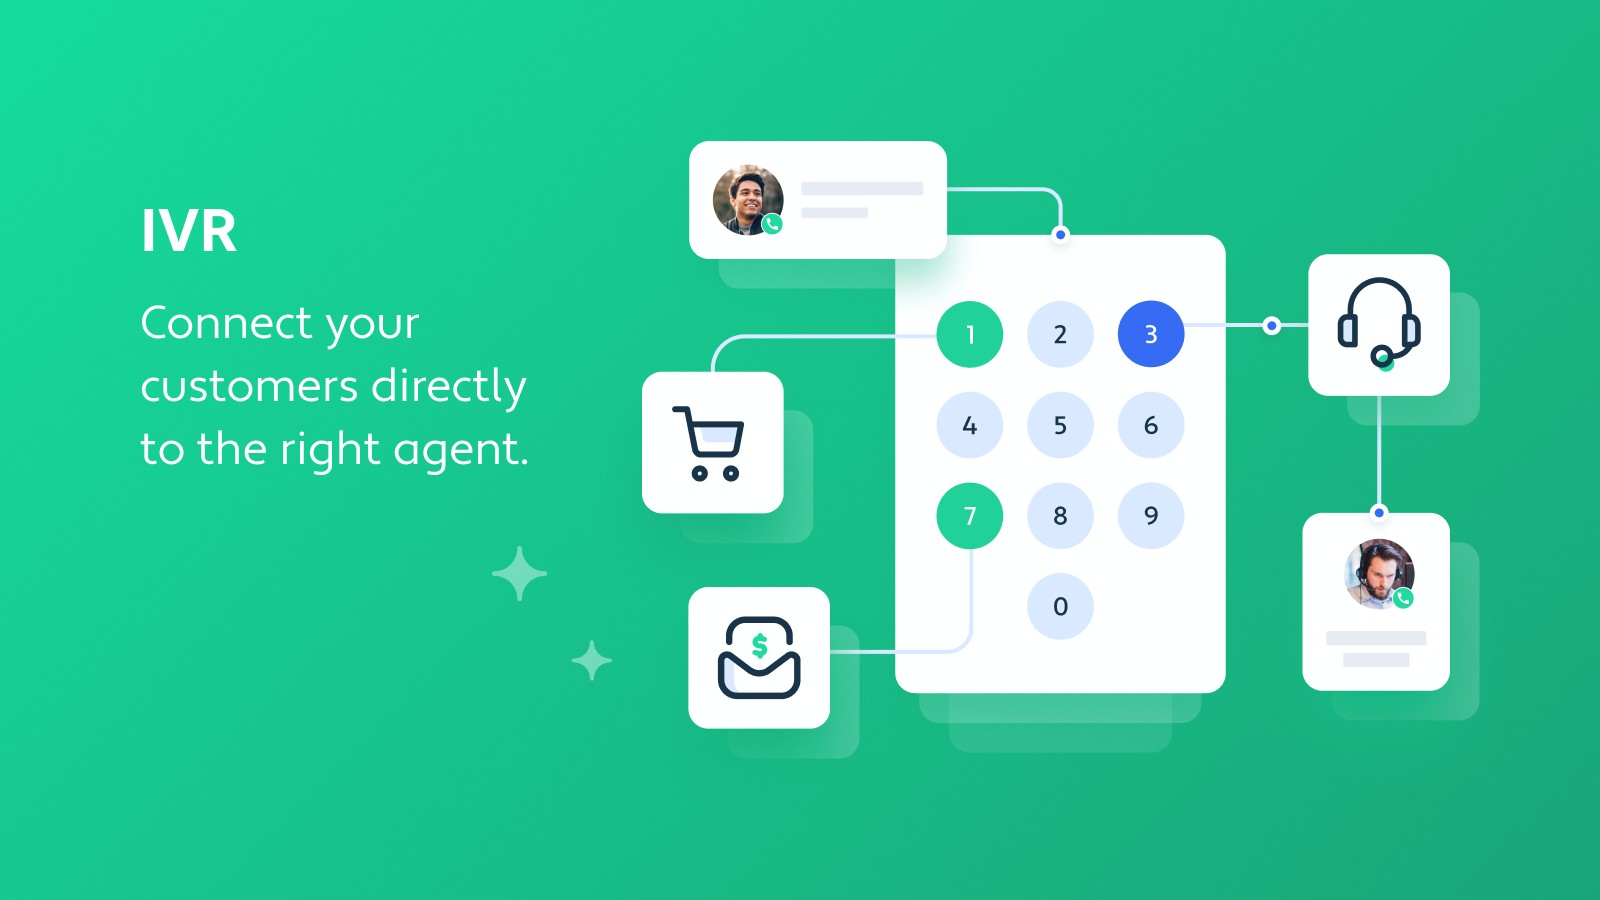 IVR - connect callers directly to the right agent.